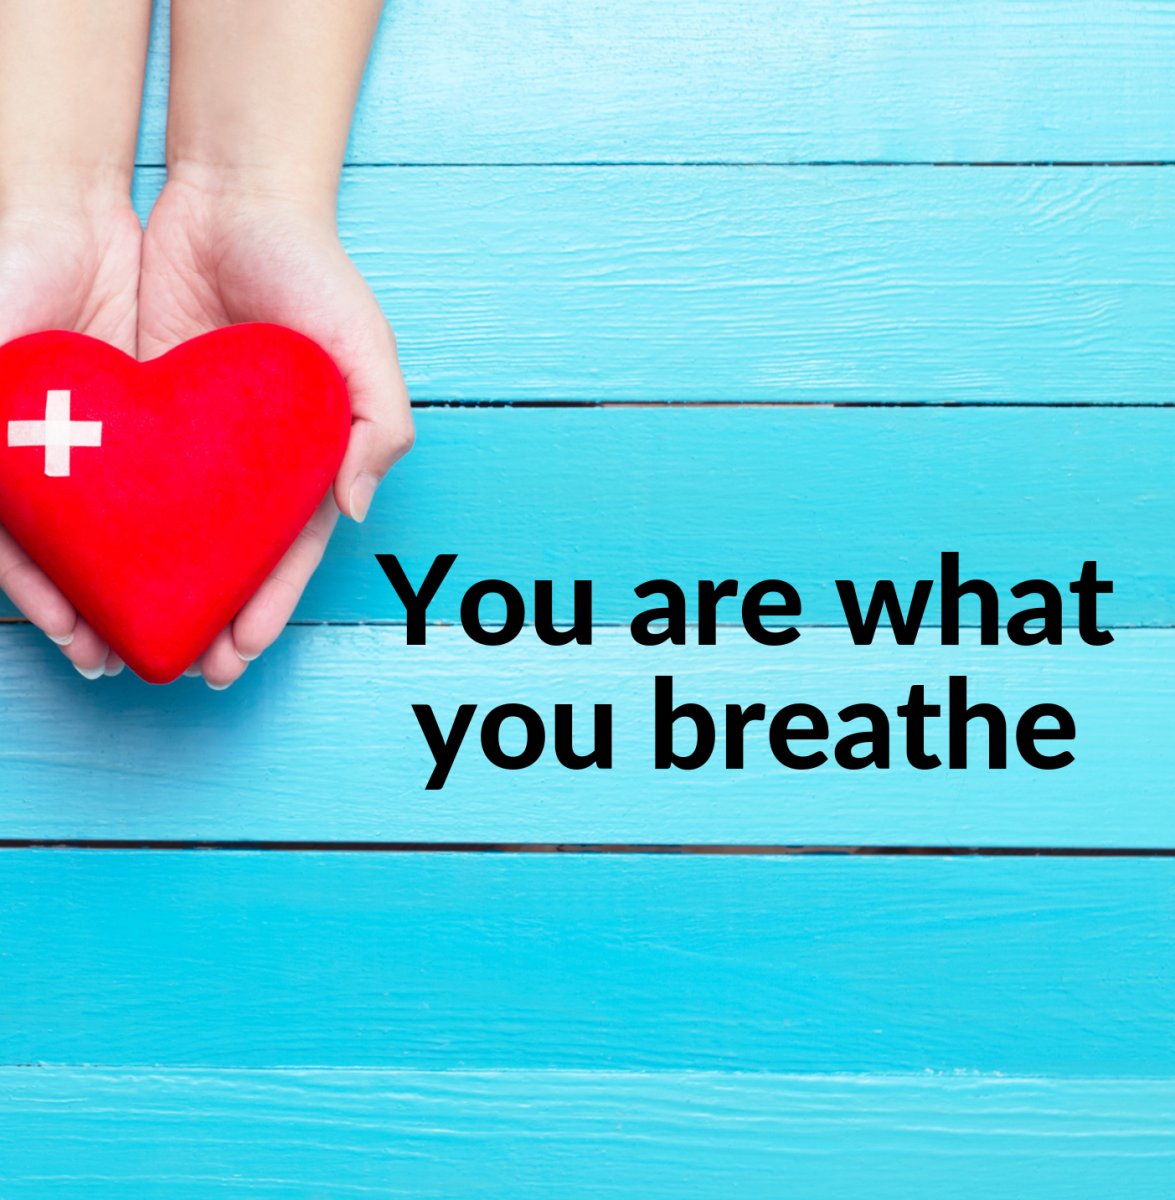 You are what you breathe.